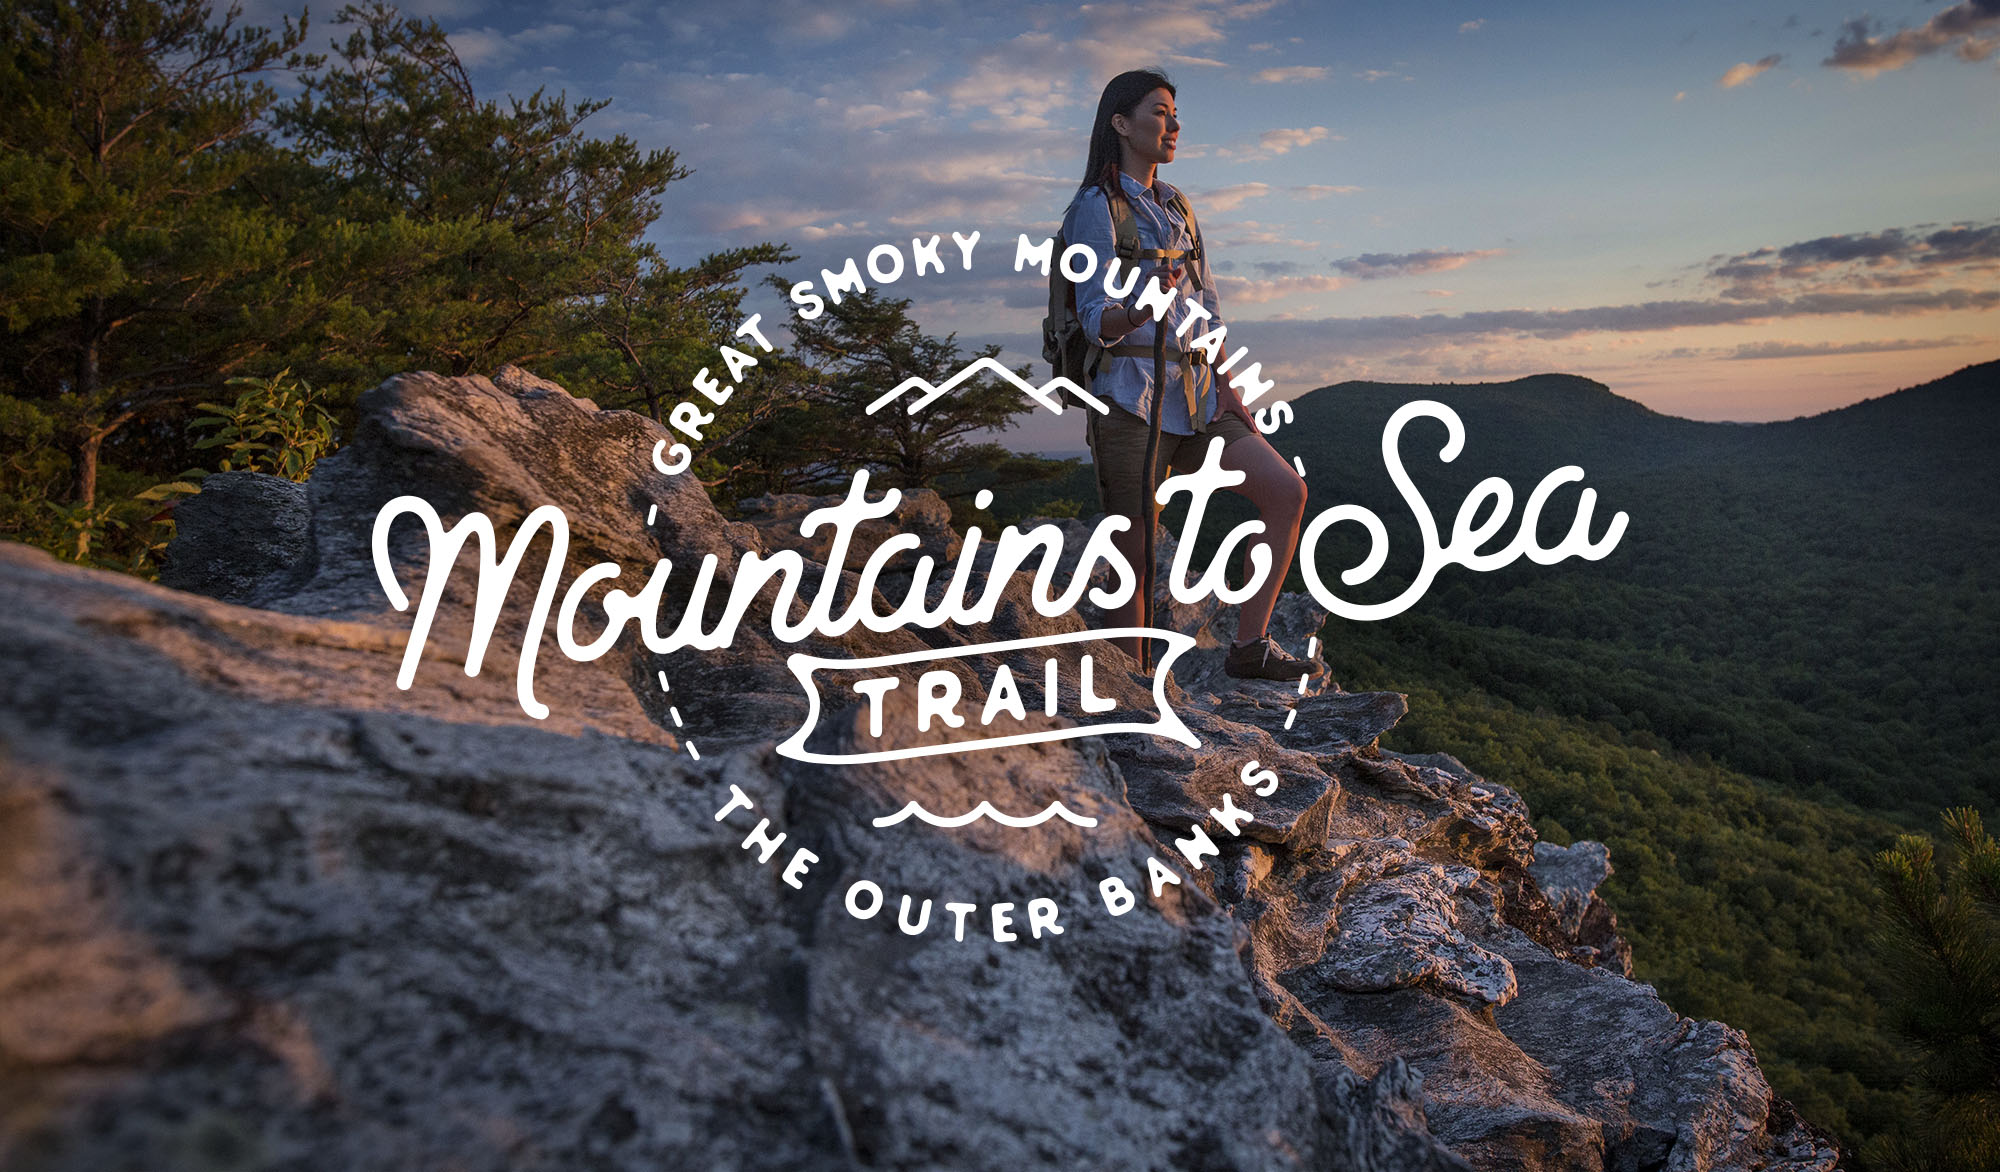 Mountains-to-Sea Trail